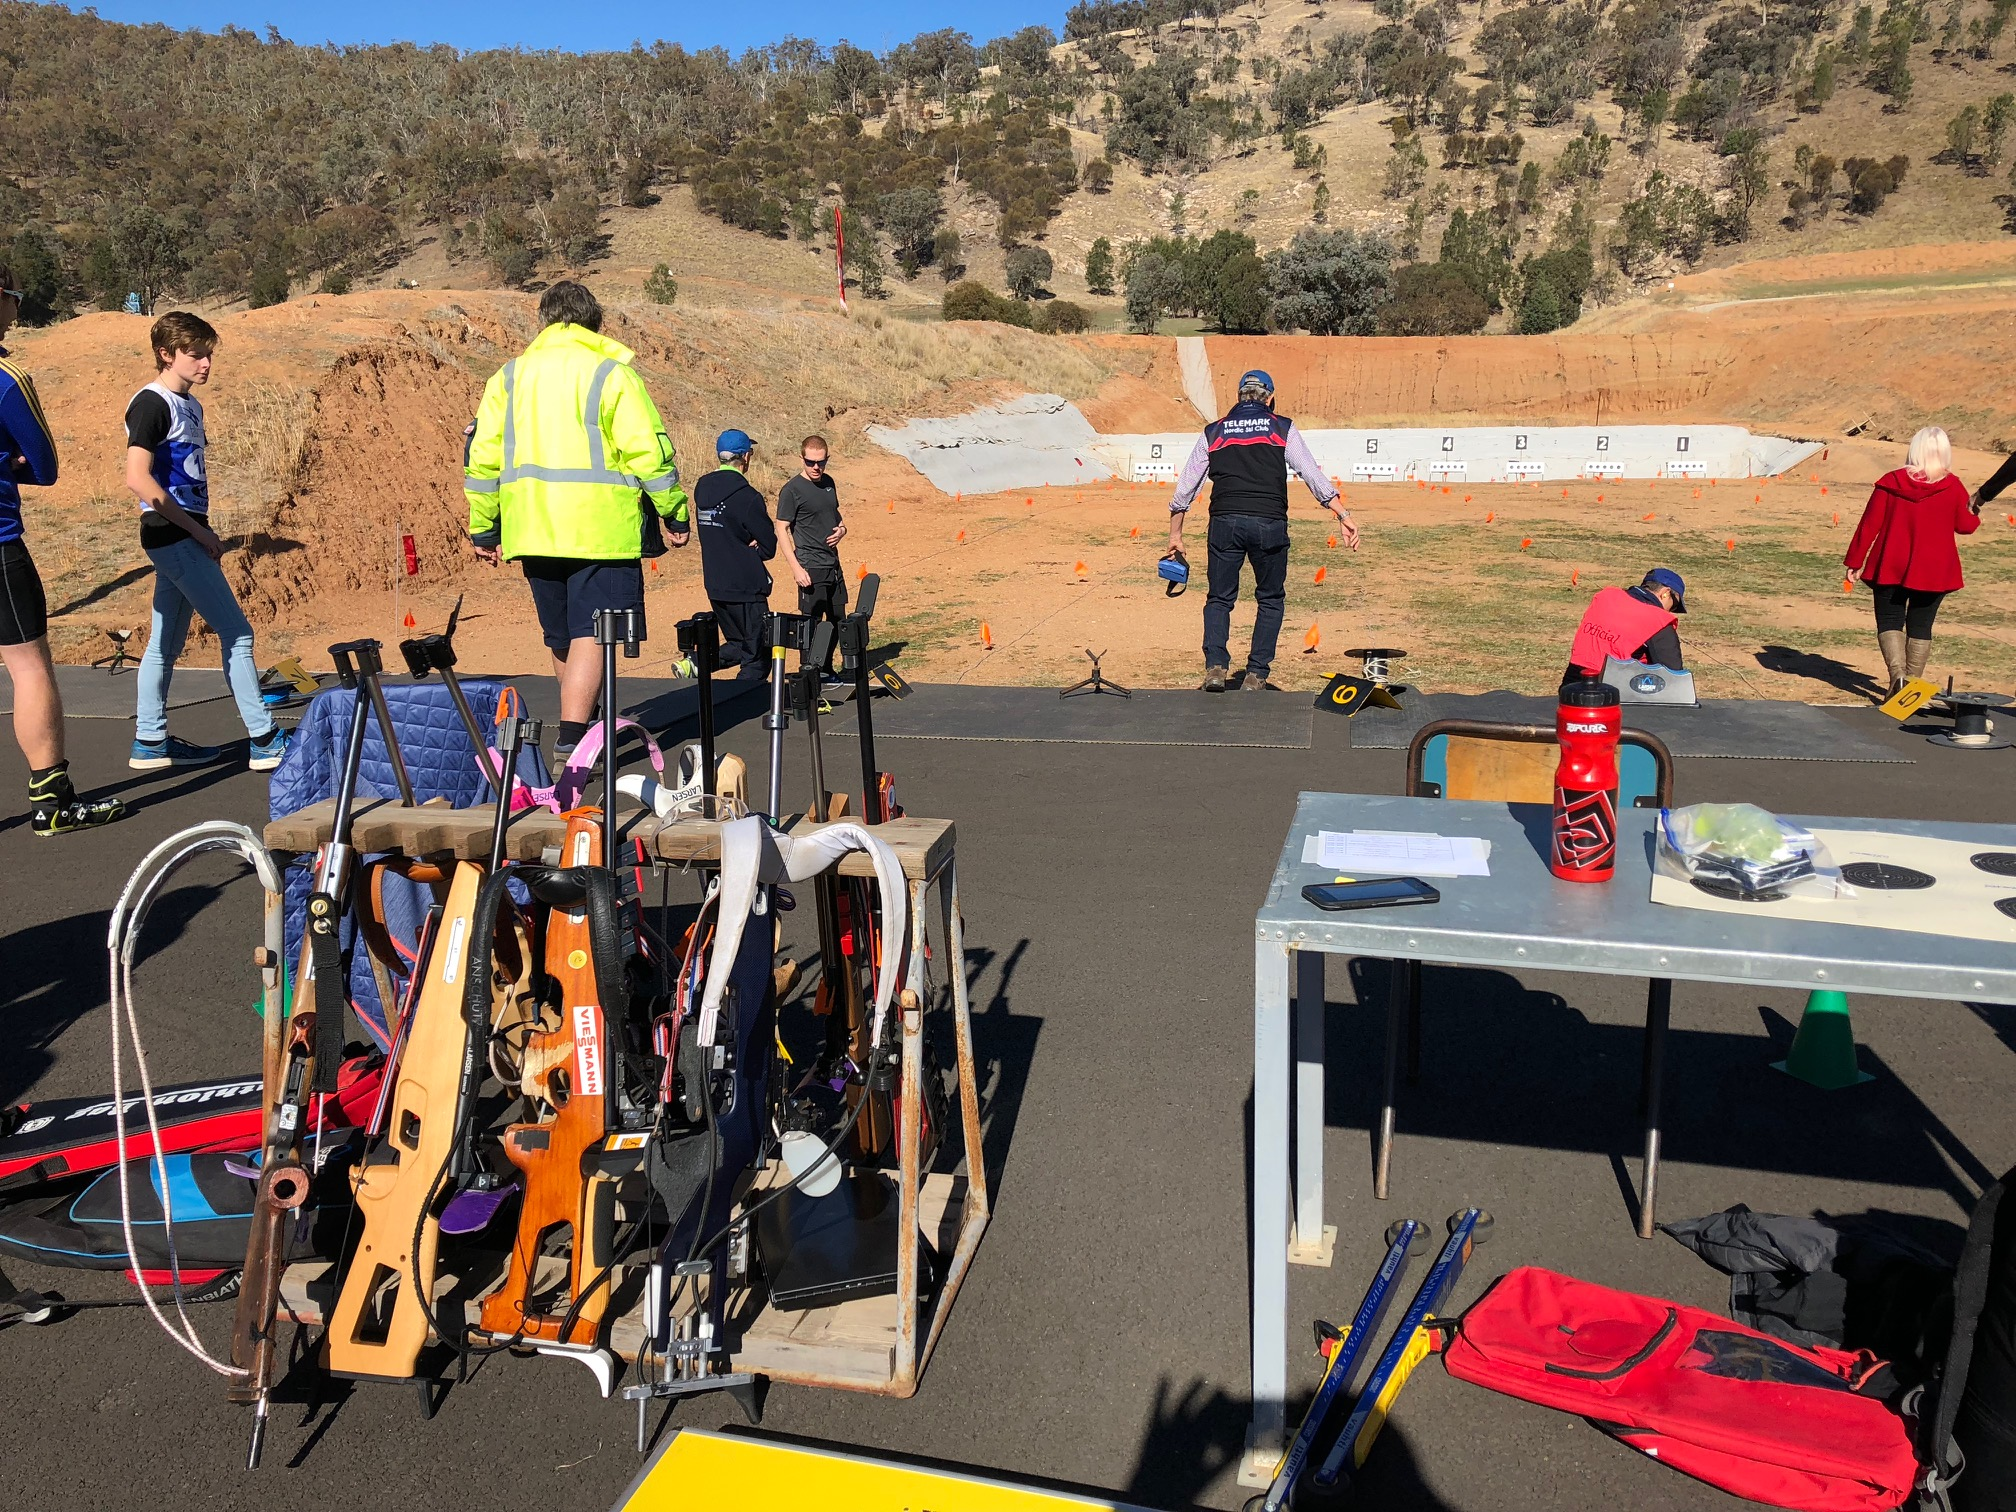 Wodonga biathlon range officially opened